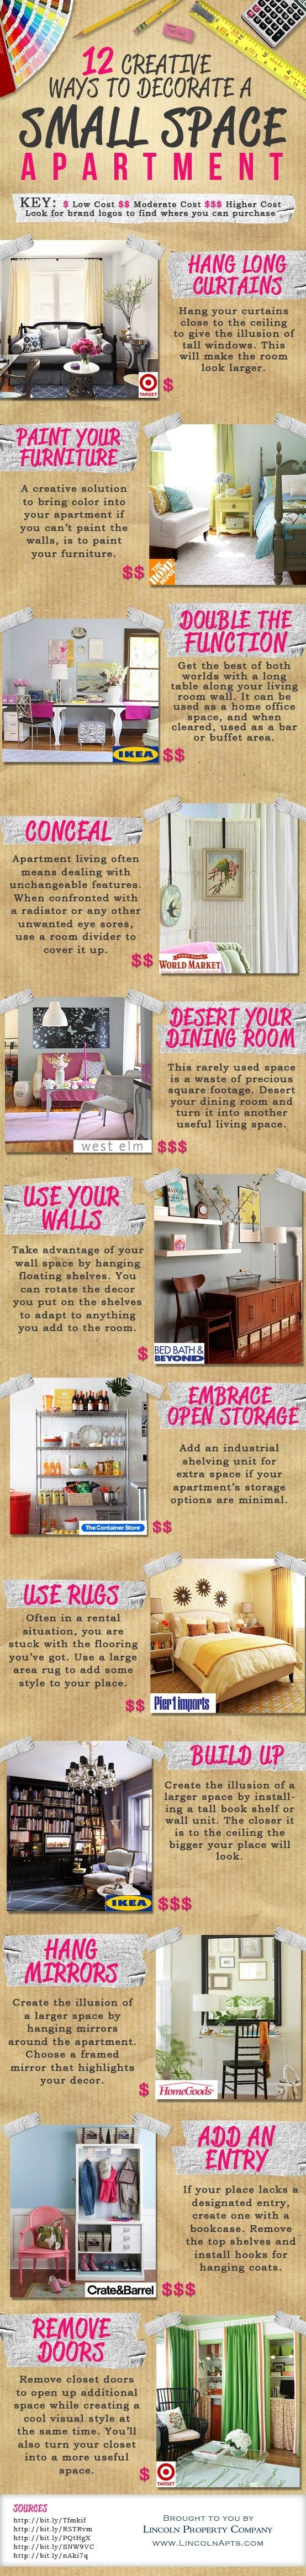 12 ways to decorate a small apartment